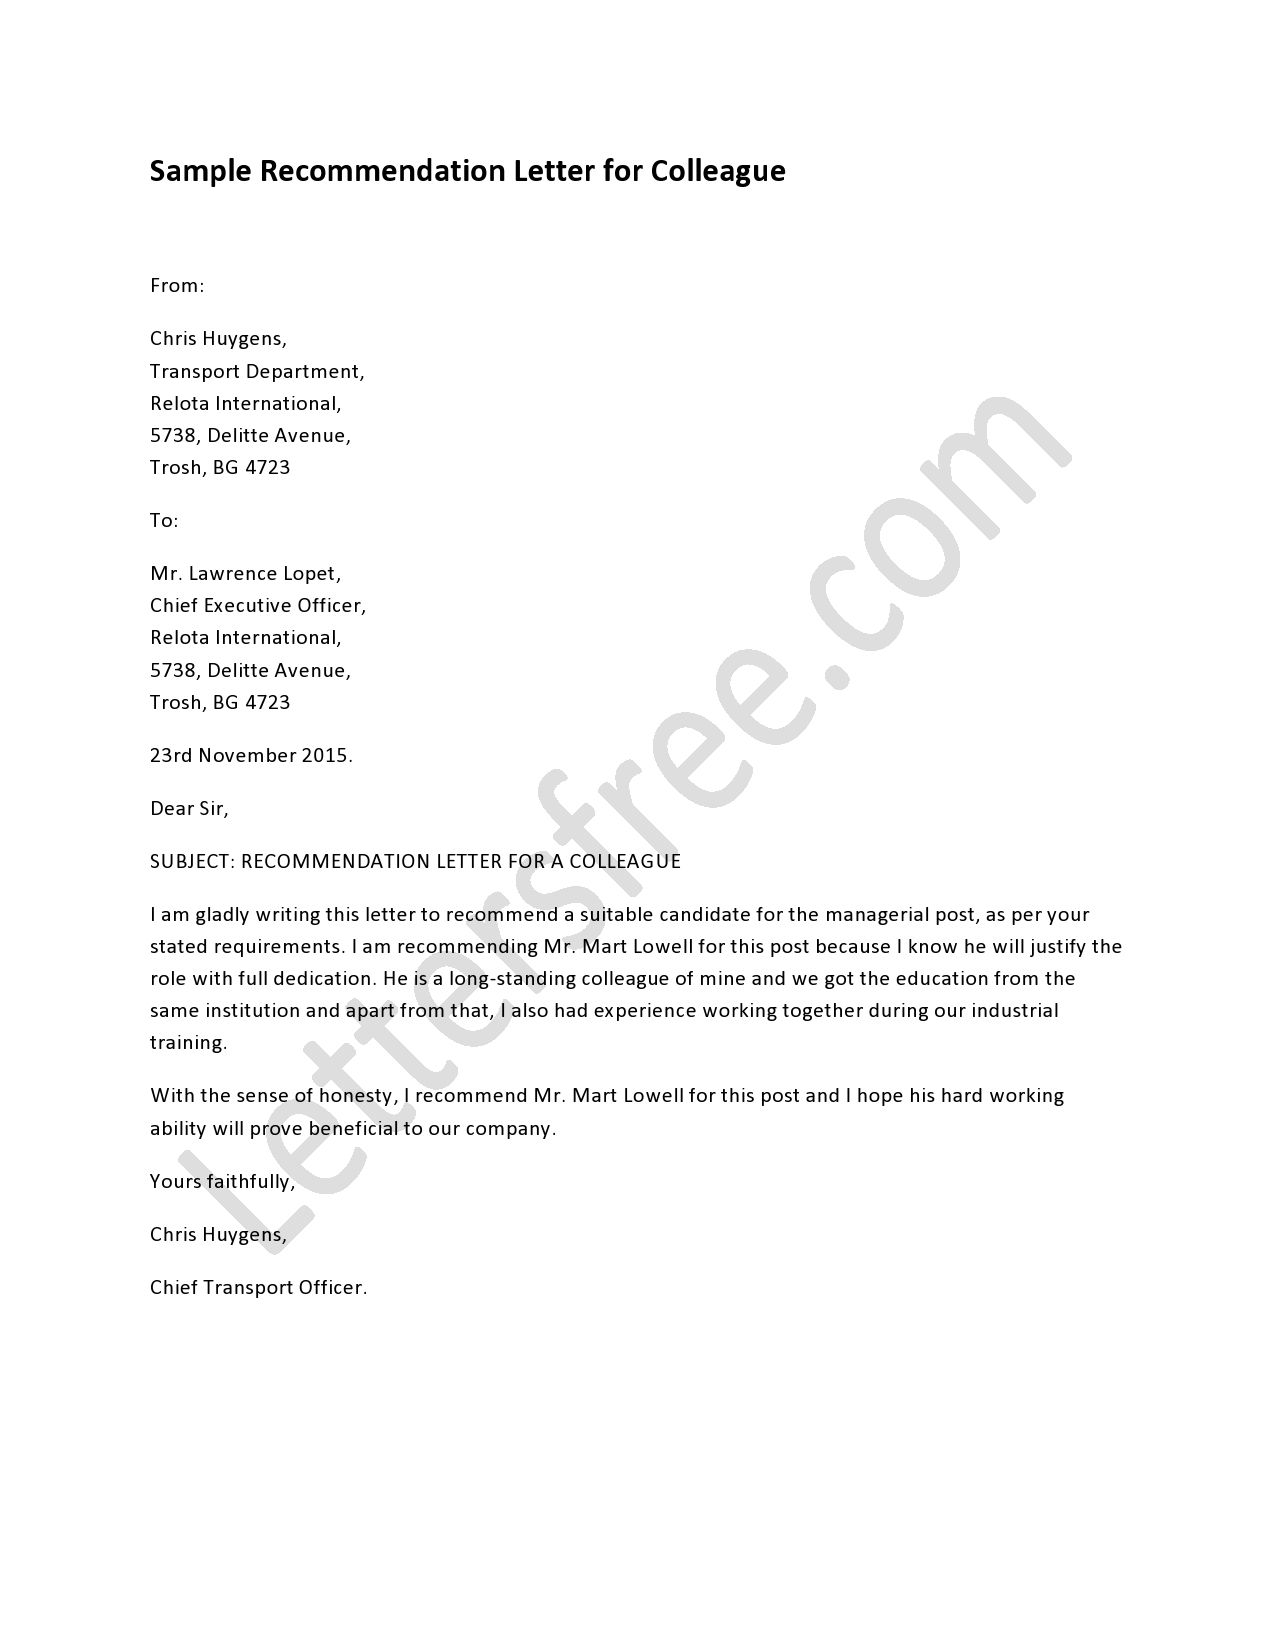 Example of recommendation letter for colleague sample example of recommendation letter for colleague sample recommendation letter how to write a recommendation mitanshu Gallery